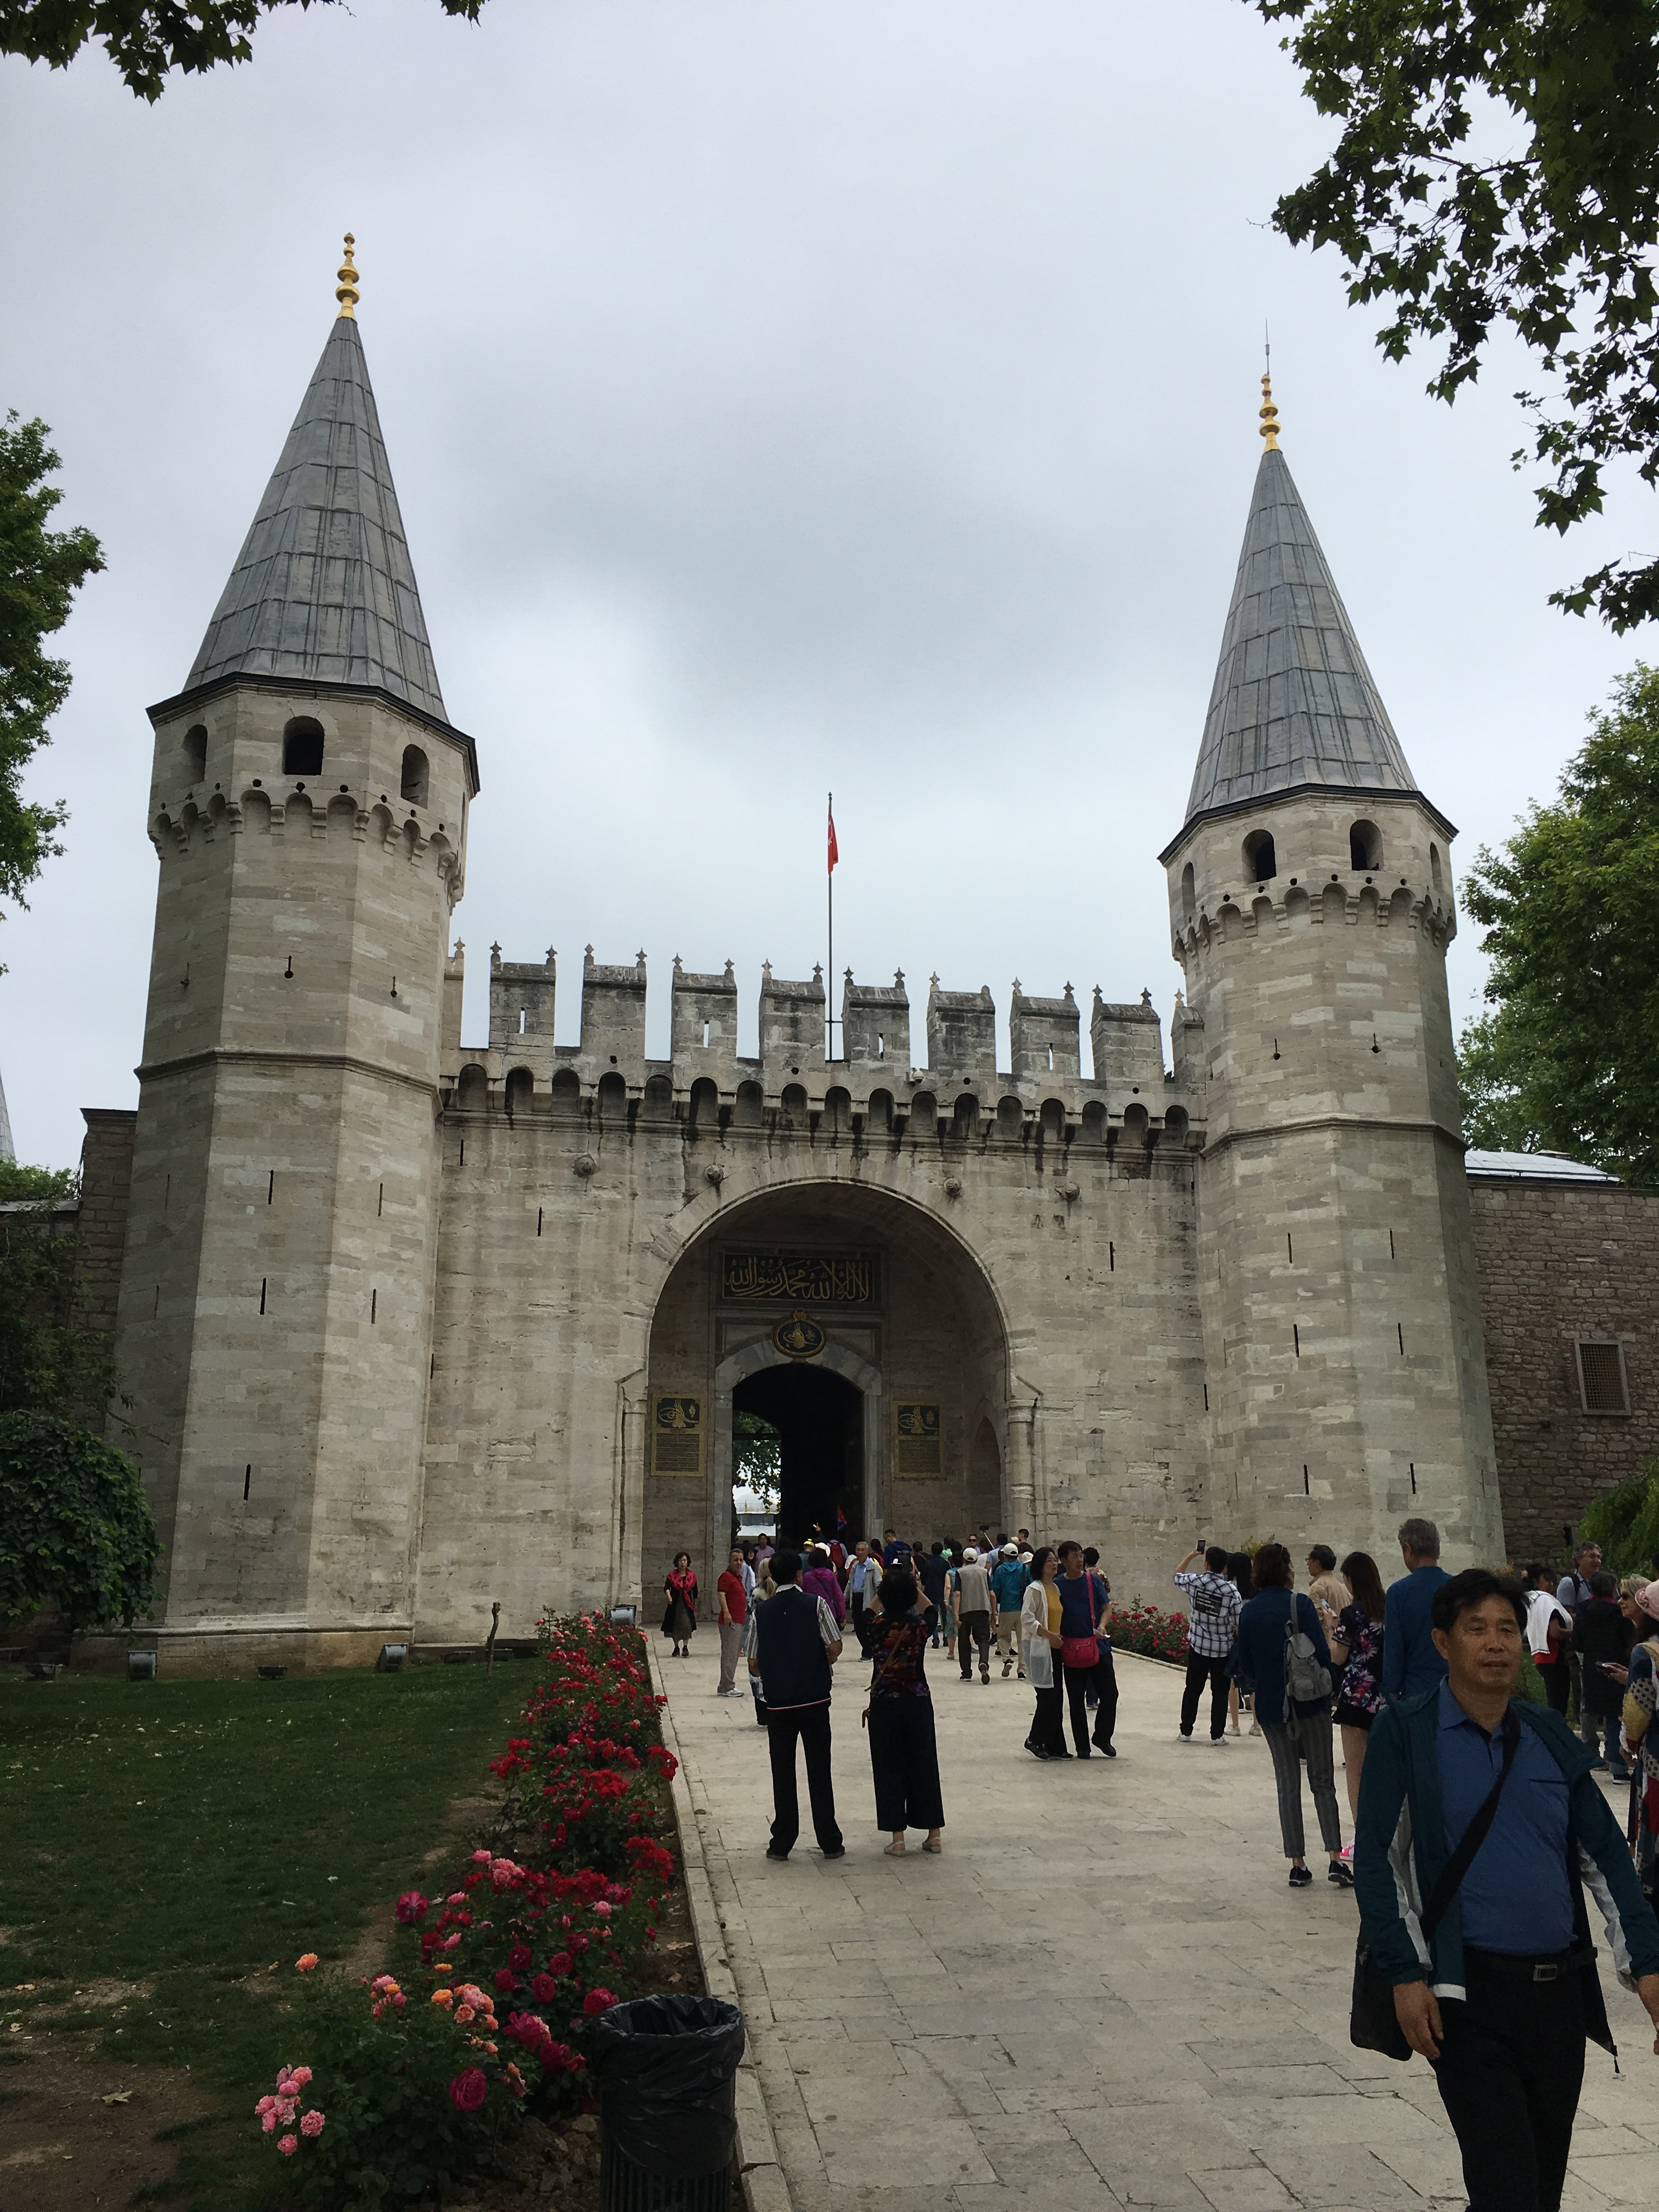 Topkapi Palace, Istanbul. Brownell. 2019